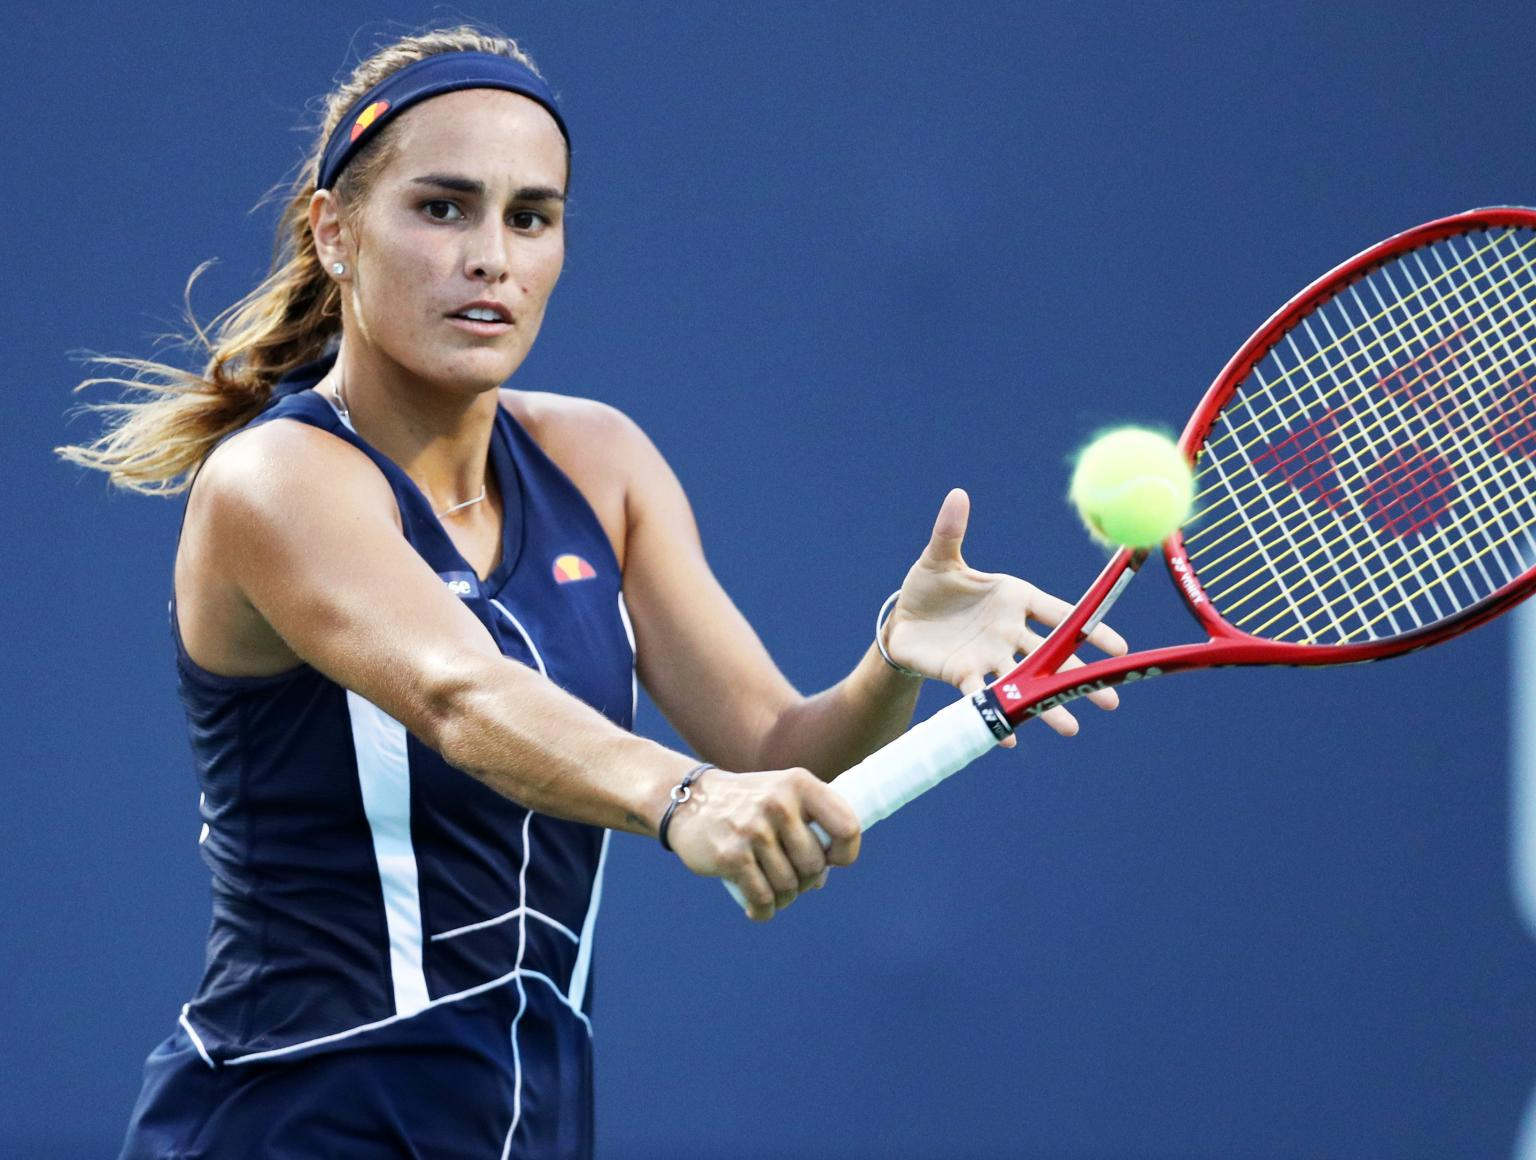 Monica Puig vs Rebecca Peterson Tennis Live Stream – 26-Aug – Womens US Open